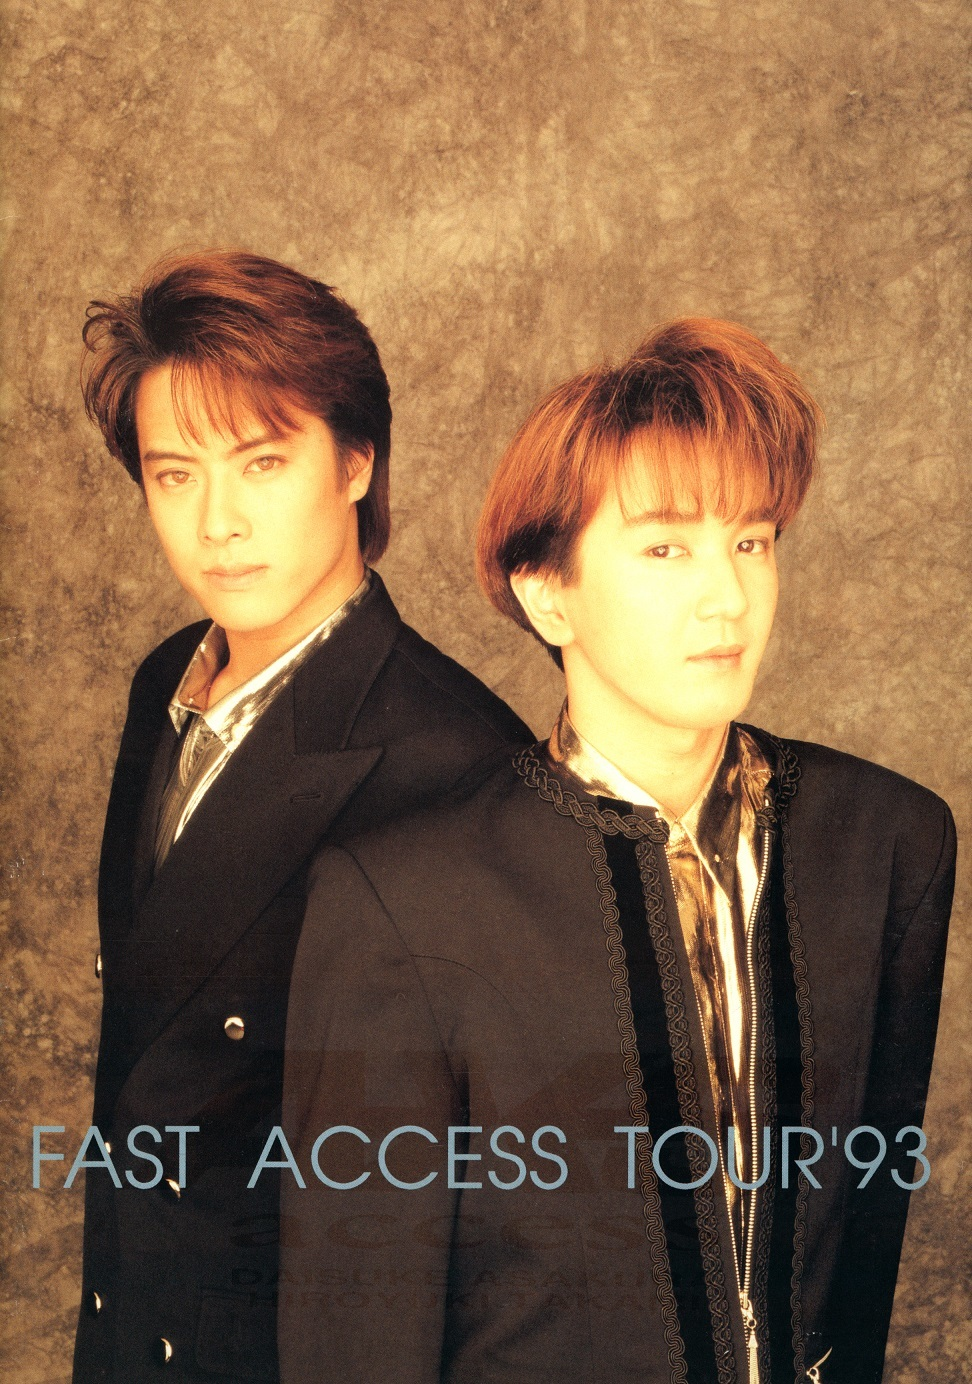 access 1st Tour「FAST ACCESS TOUR '93」ツアーパンフレット